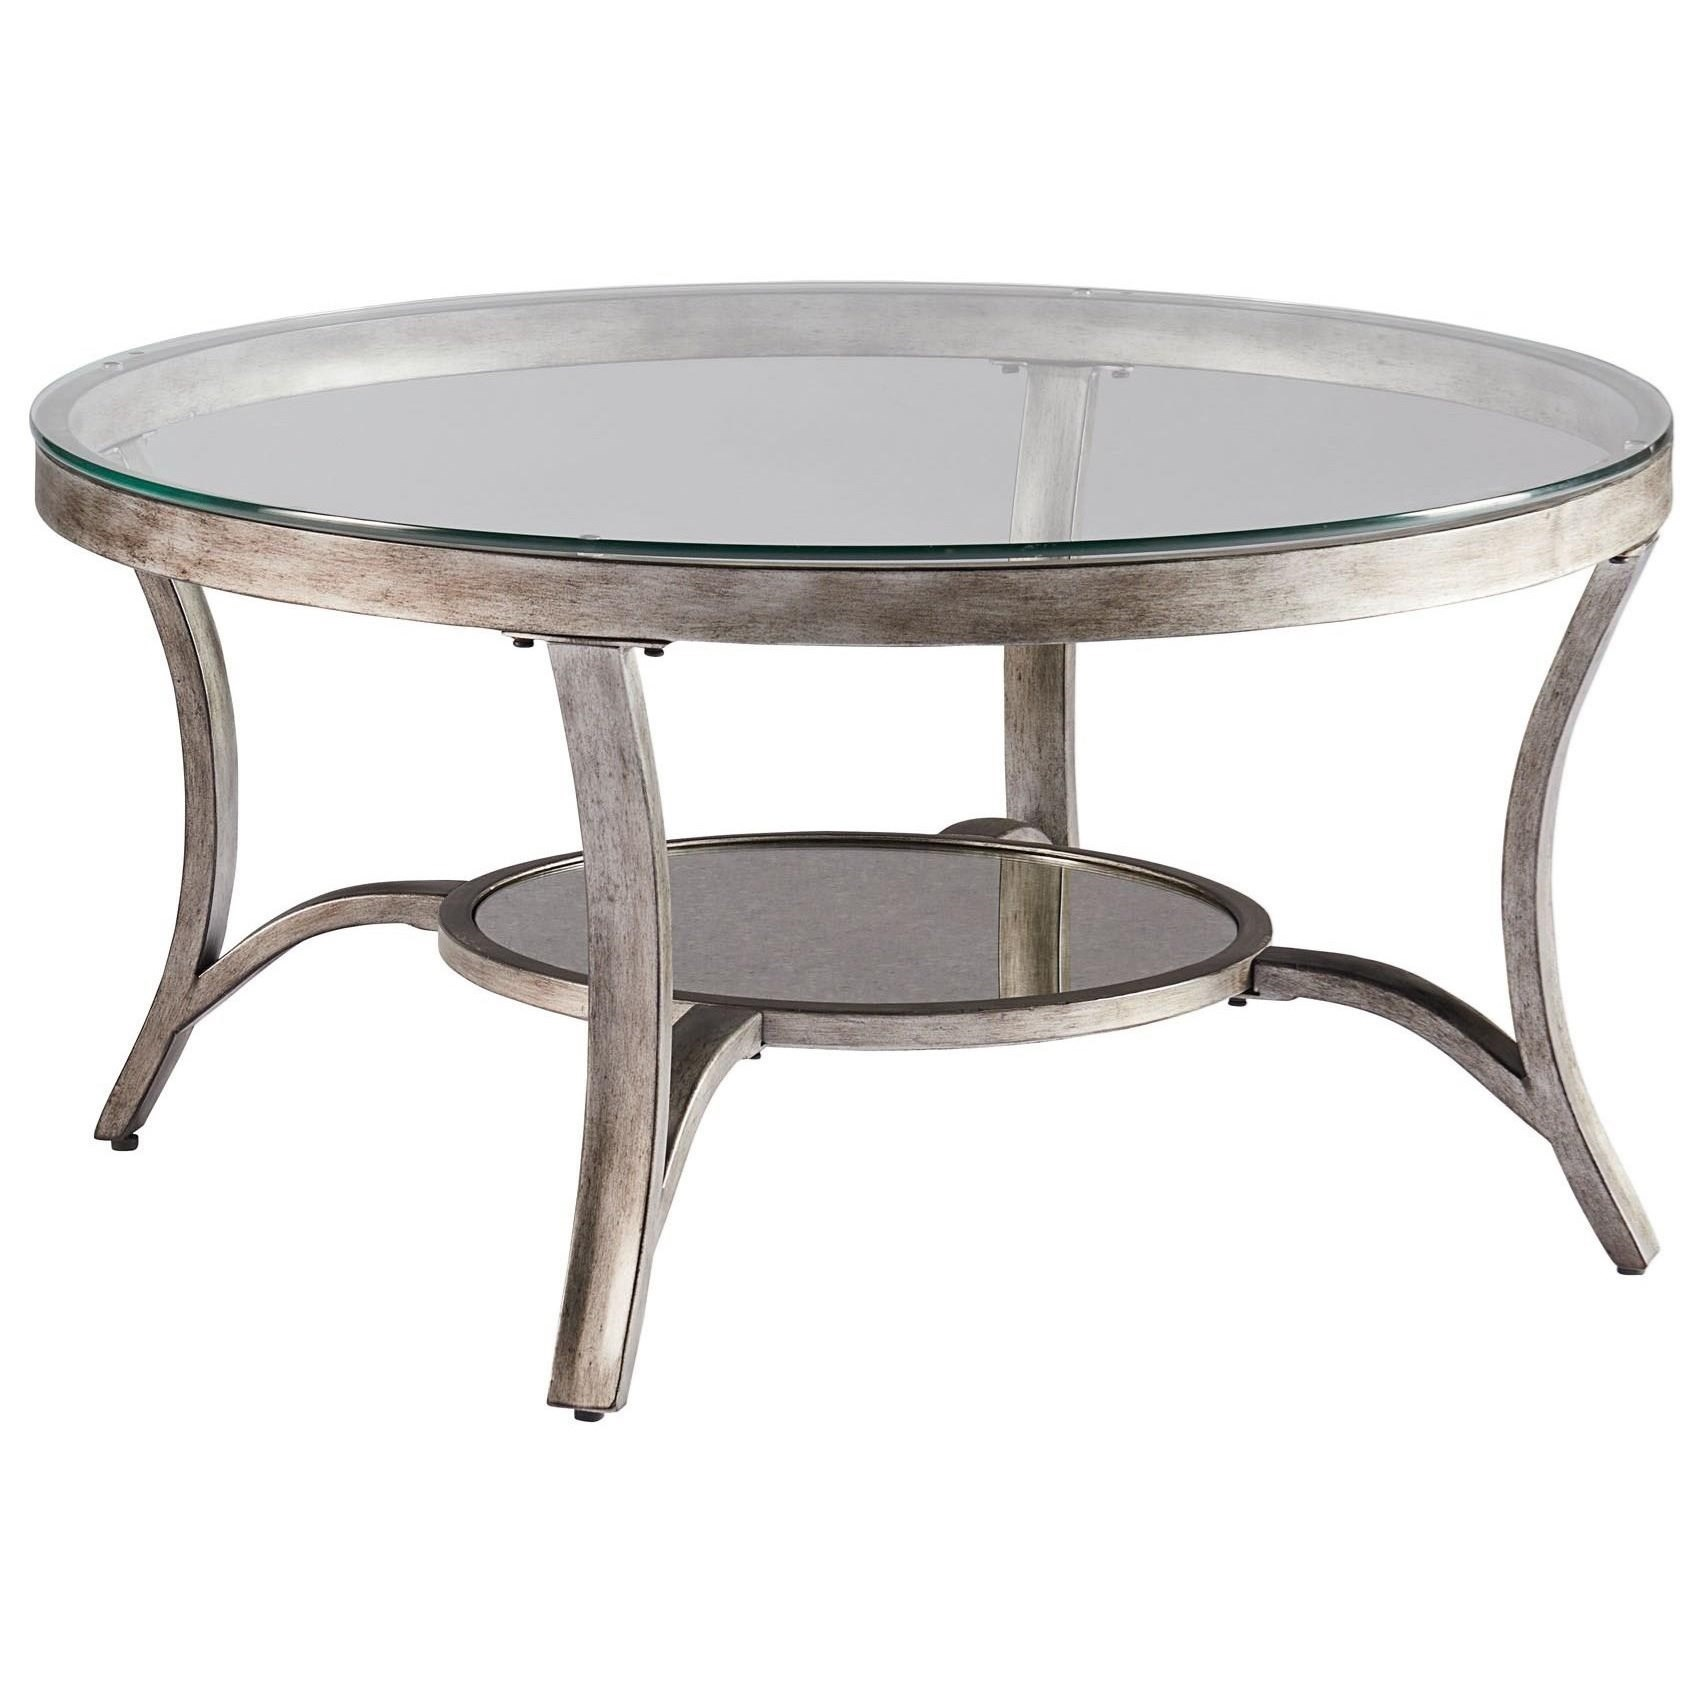 7ef0c90102b3c1 Round Cocktail Table with Glass Top. Low price guarantee badge by Standard  Furniture